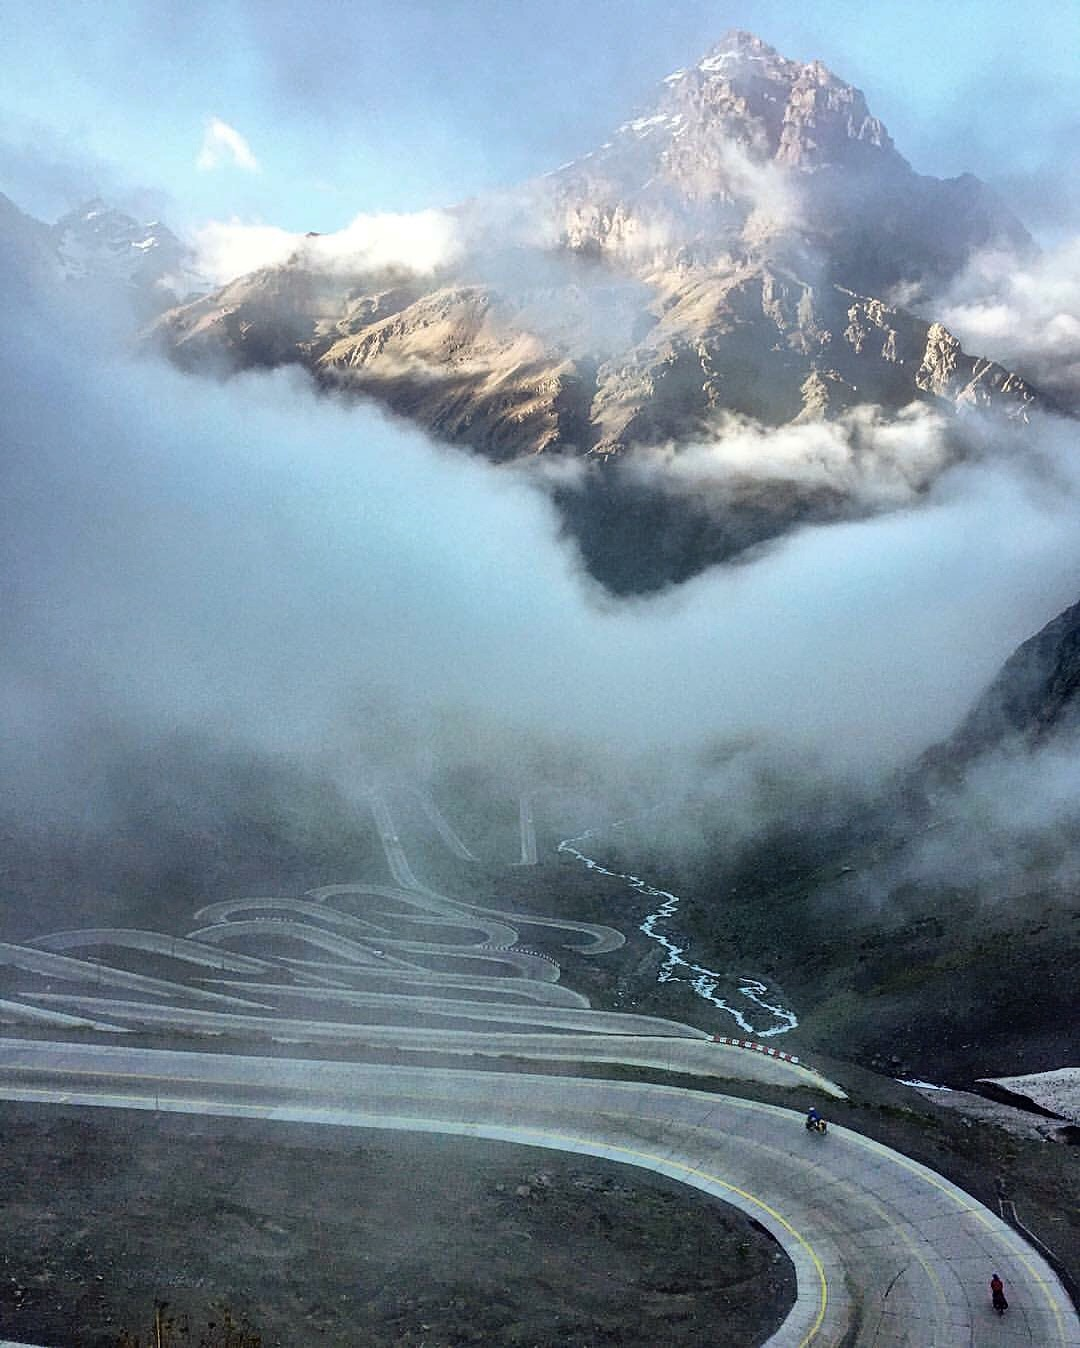 Cycling the Andes - be prepared for some climbing.